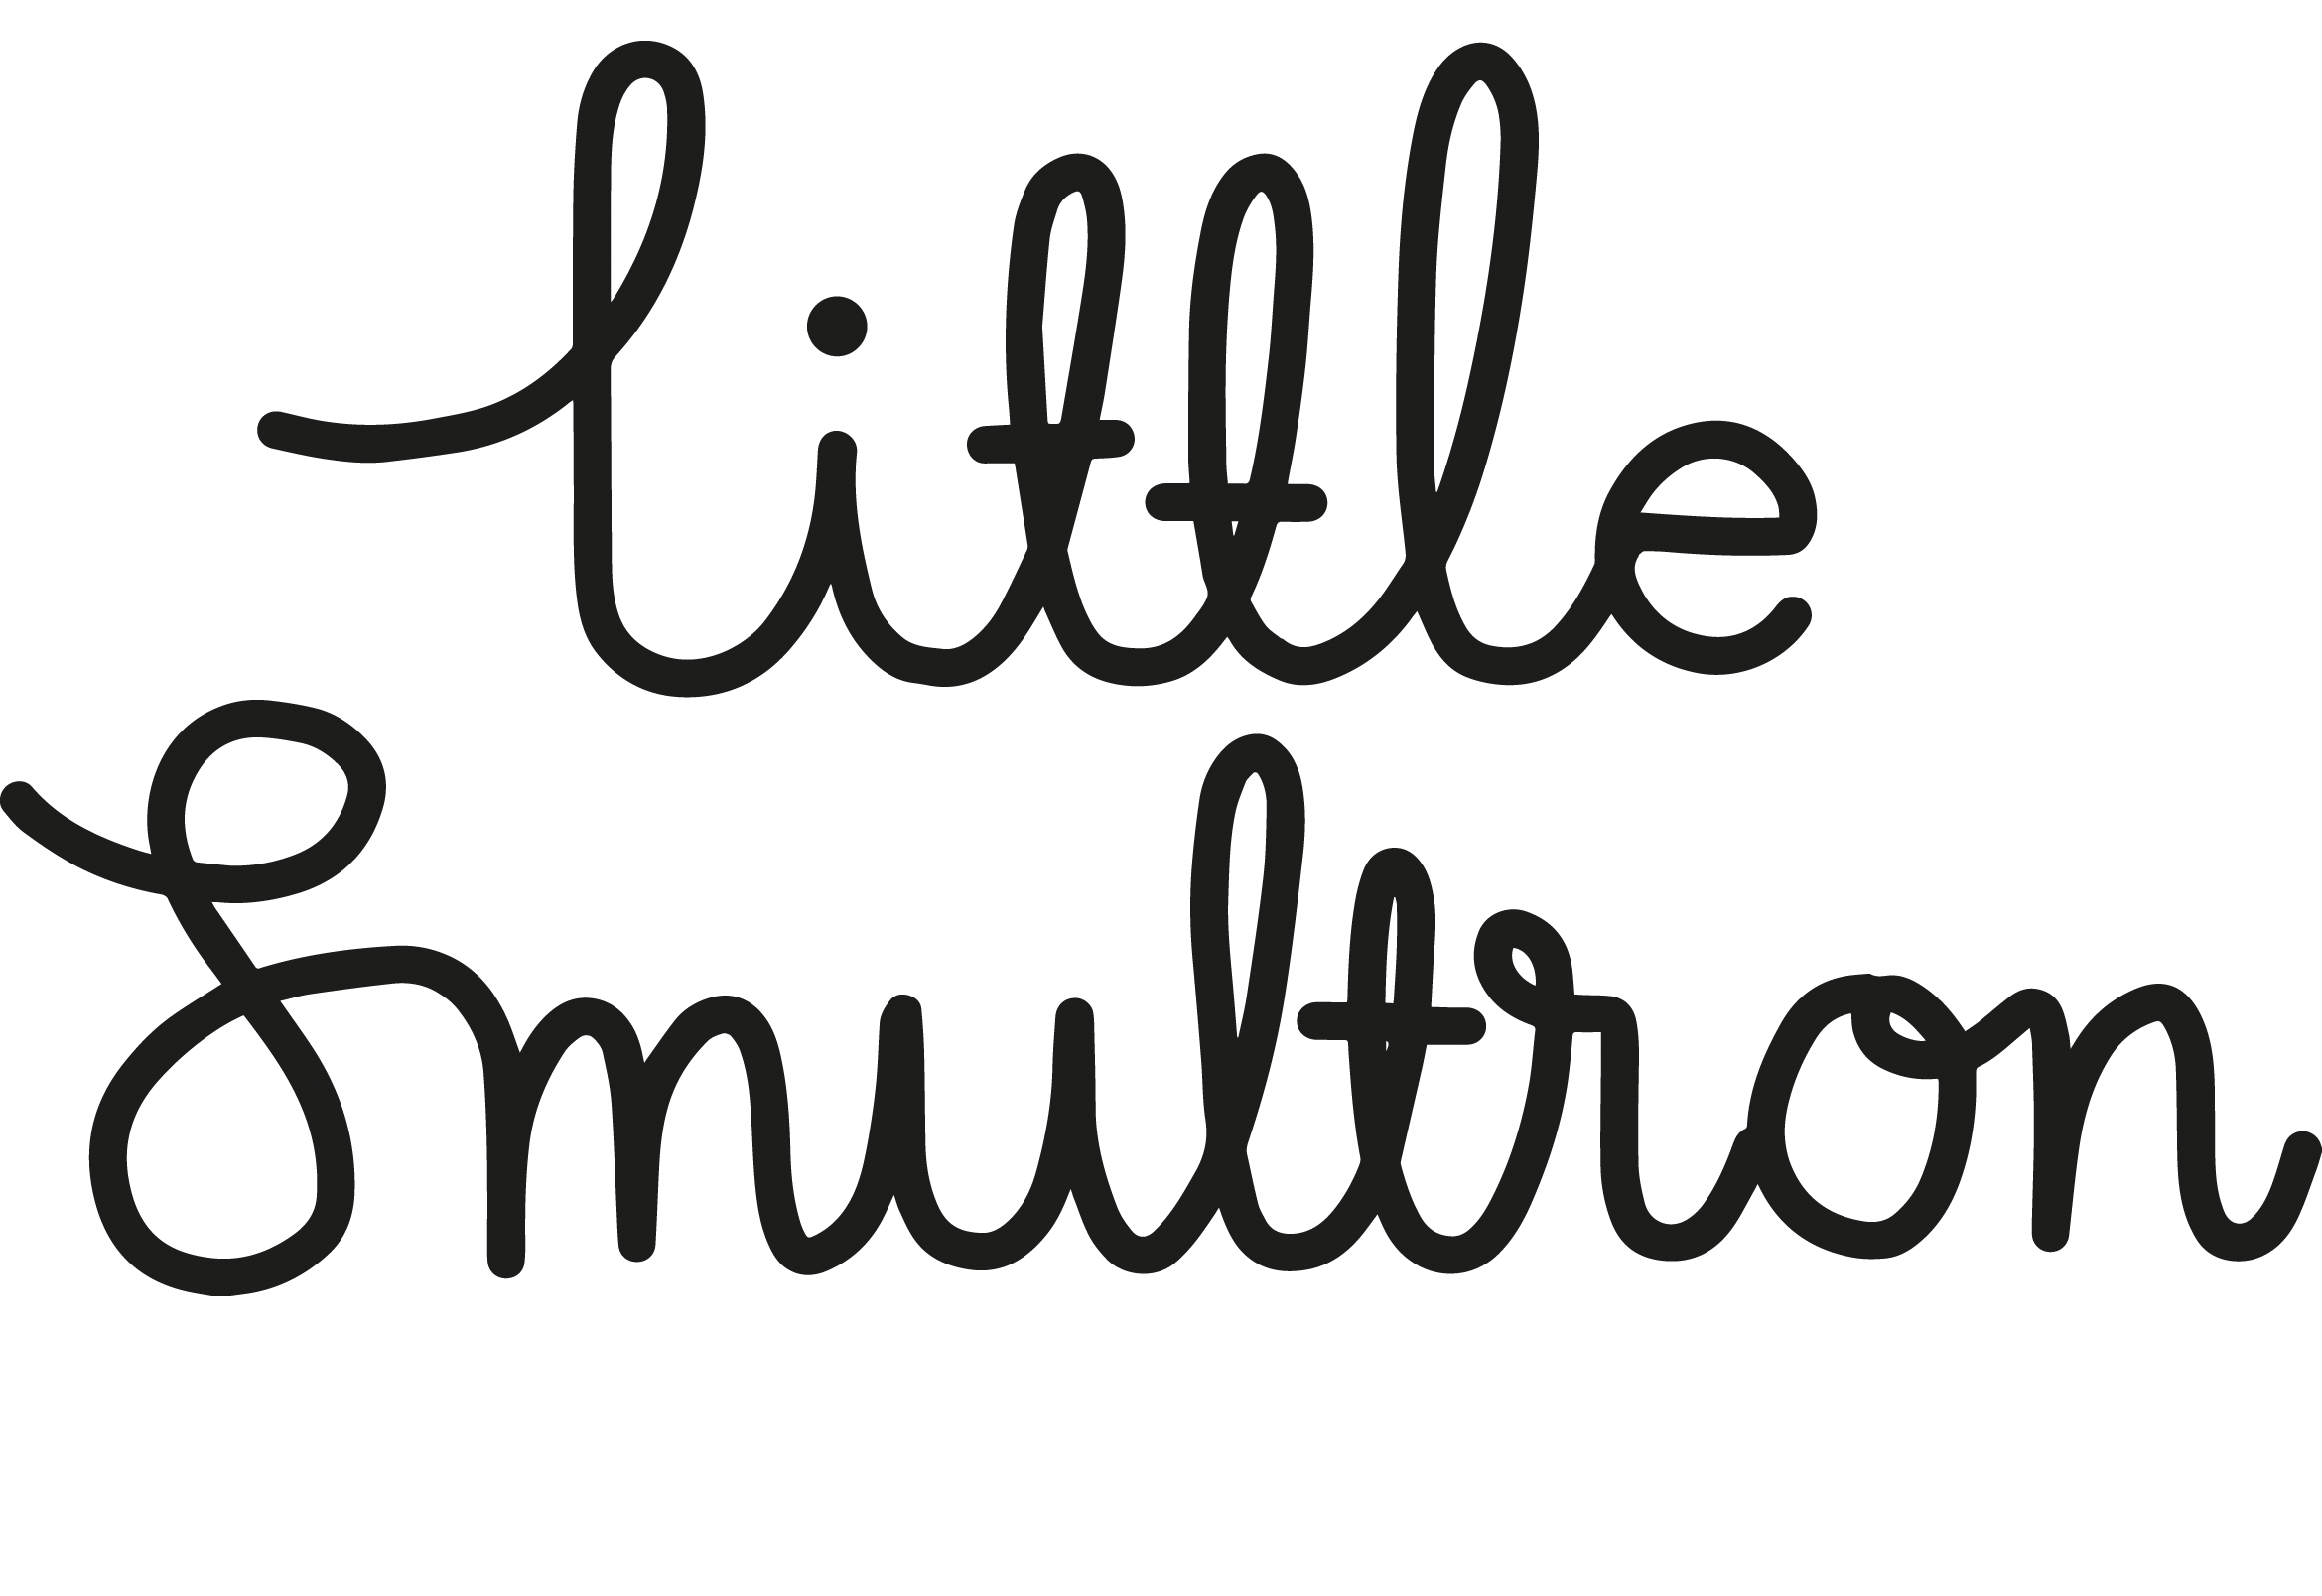 Little Smultron